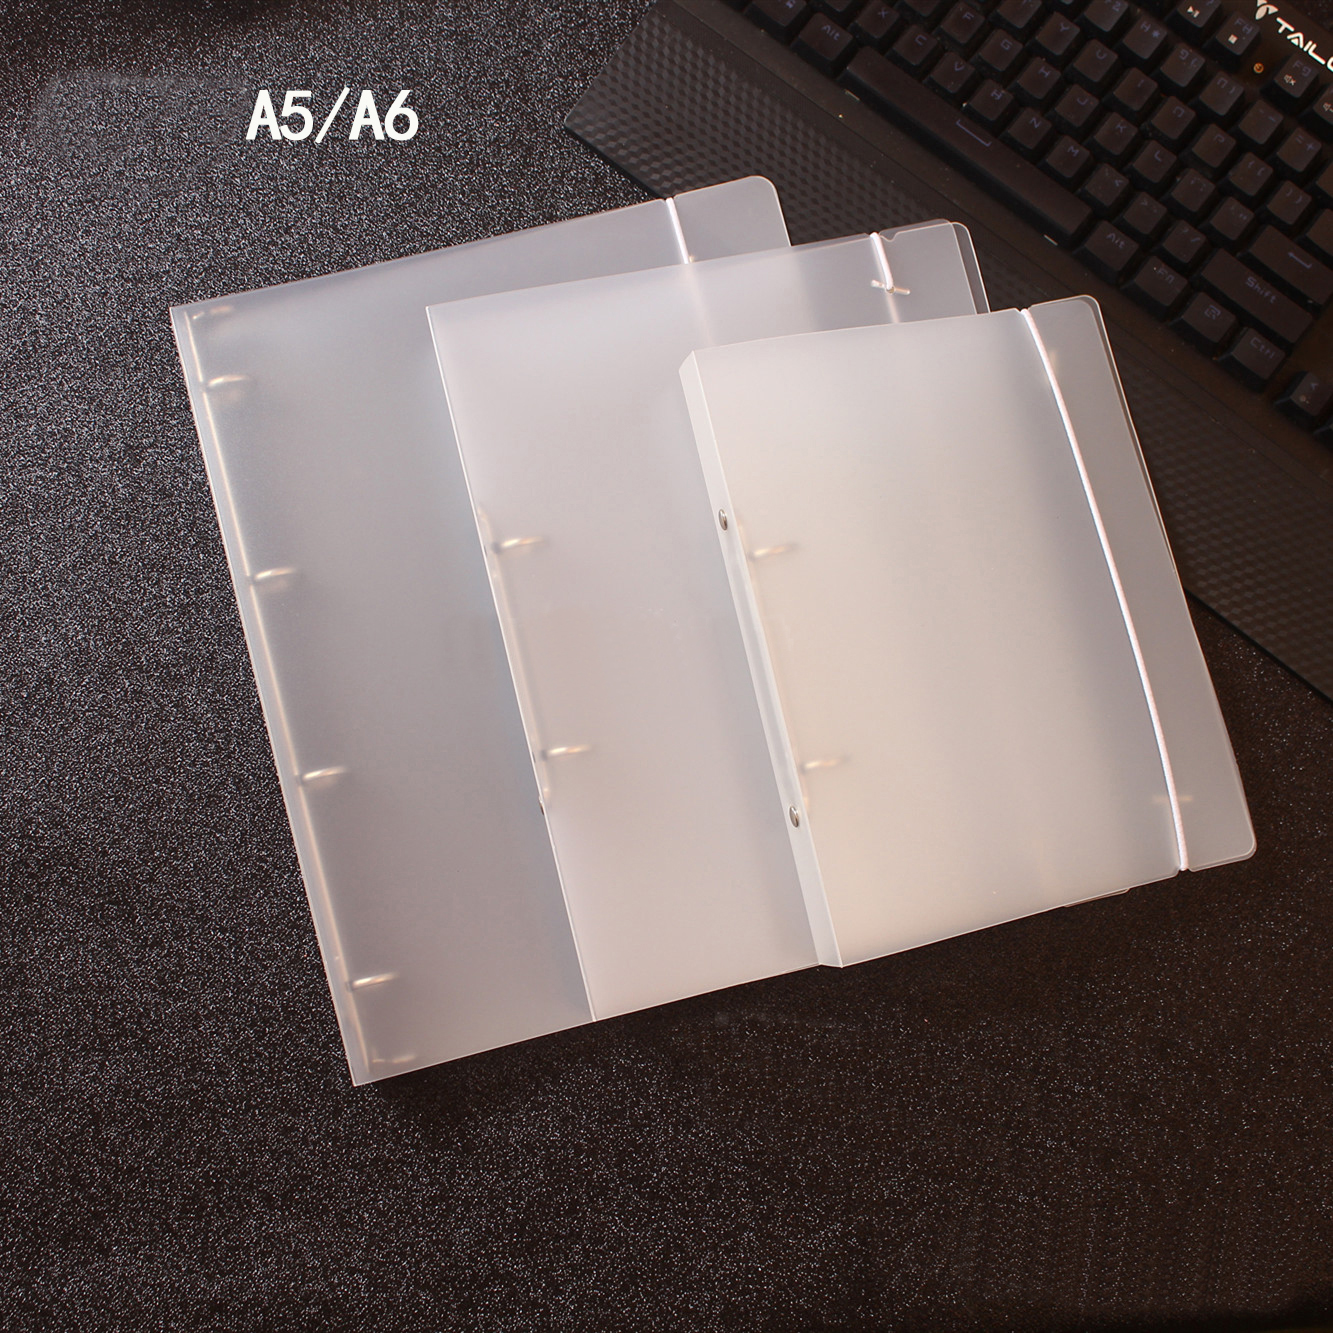 A5 A6 A7 6 Hole Ring Binder Notebook Planner PP Transparent Inner Core Cover Accessory Office School Supplies Stationery Store